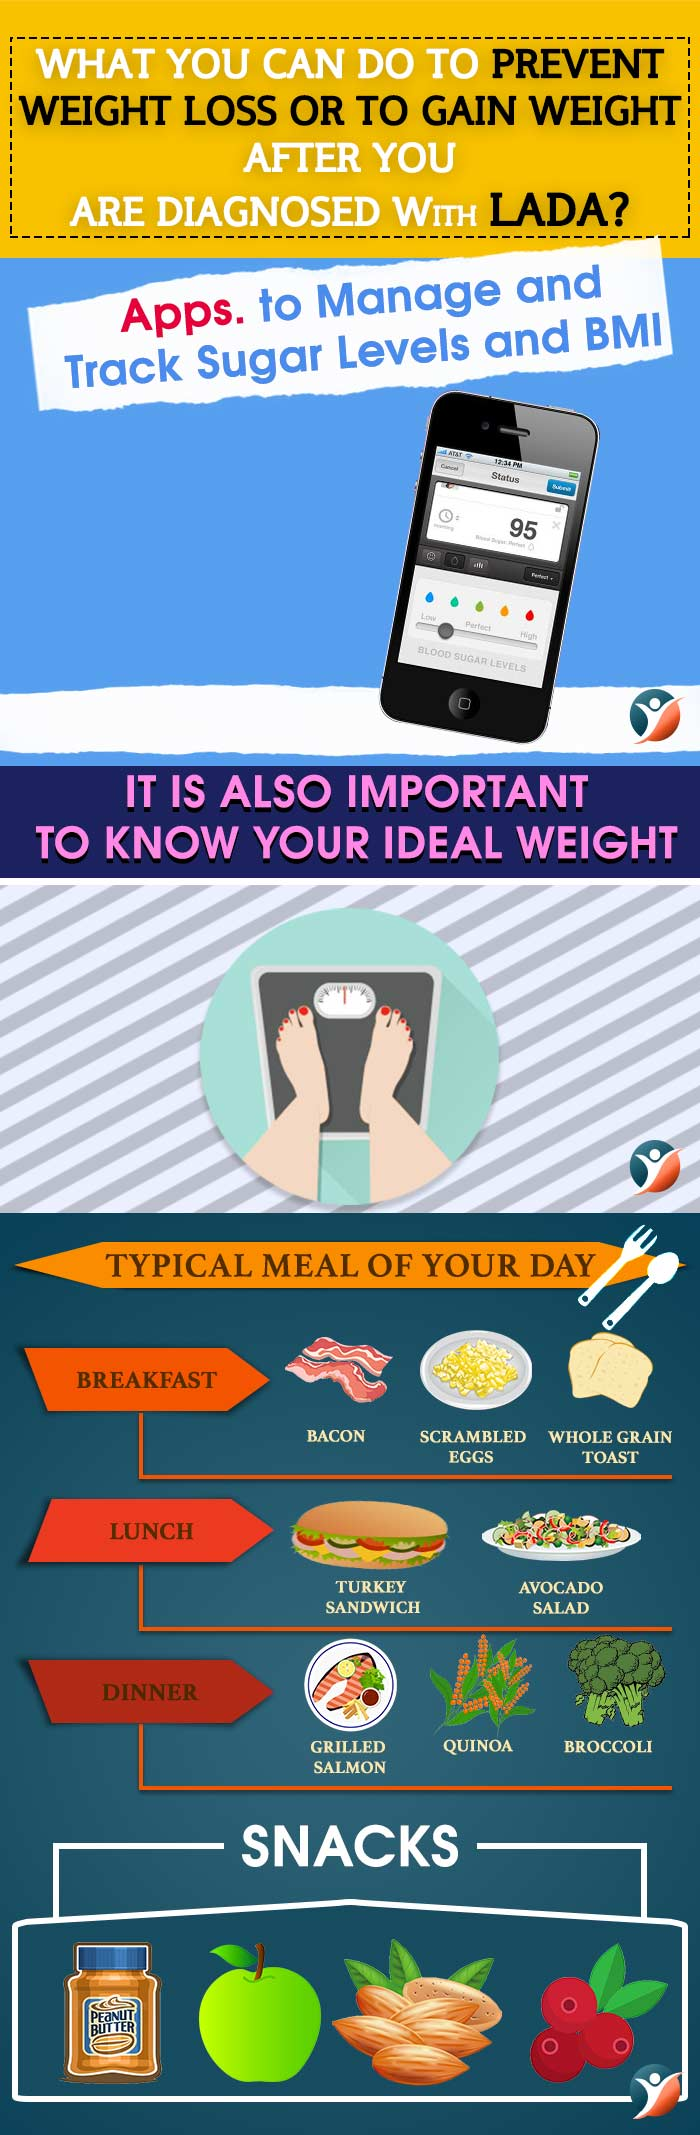 how to prevent weight loss or weight gain after being diagnosed with LADA